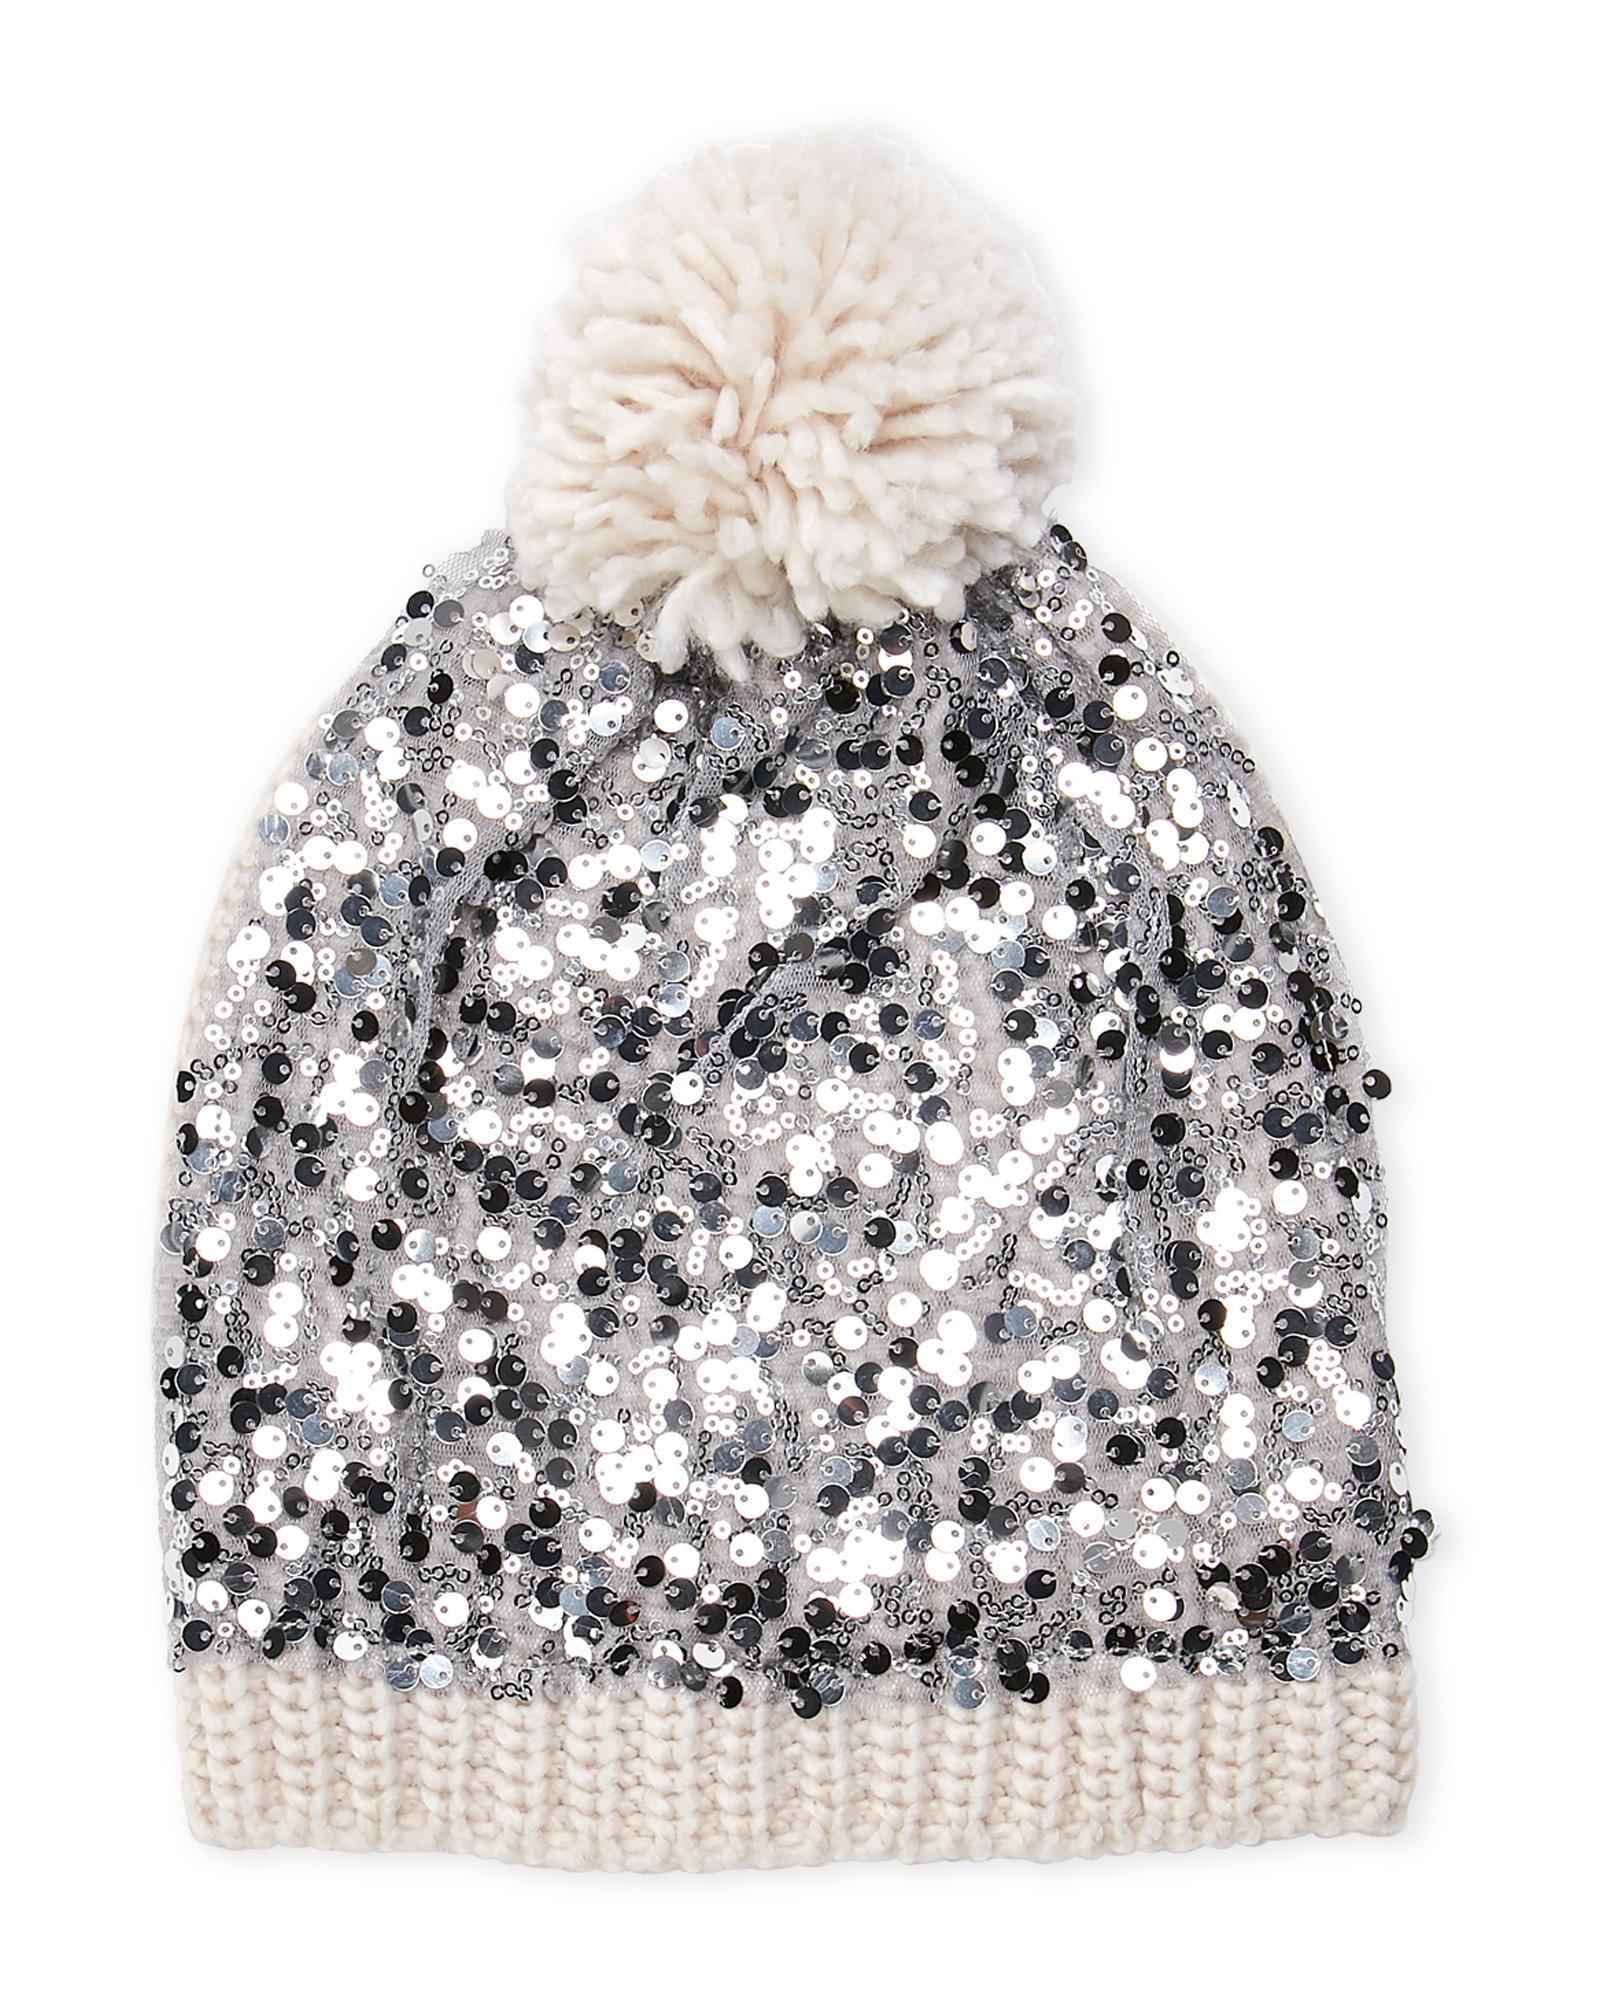 Lyst - Betsey Johnson Knit Sequin Beanie in White 62c1b7f652b